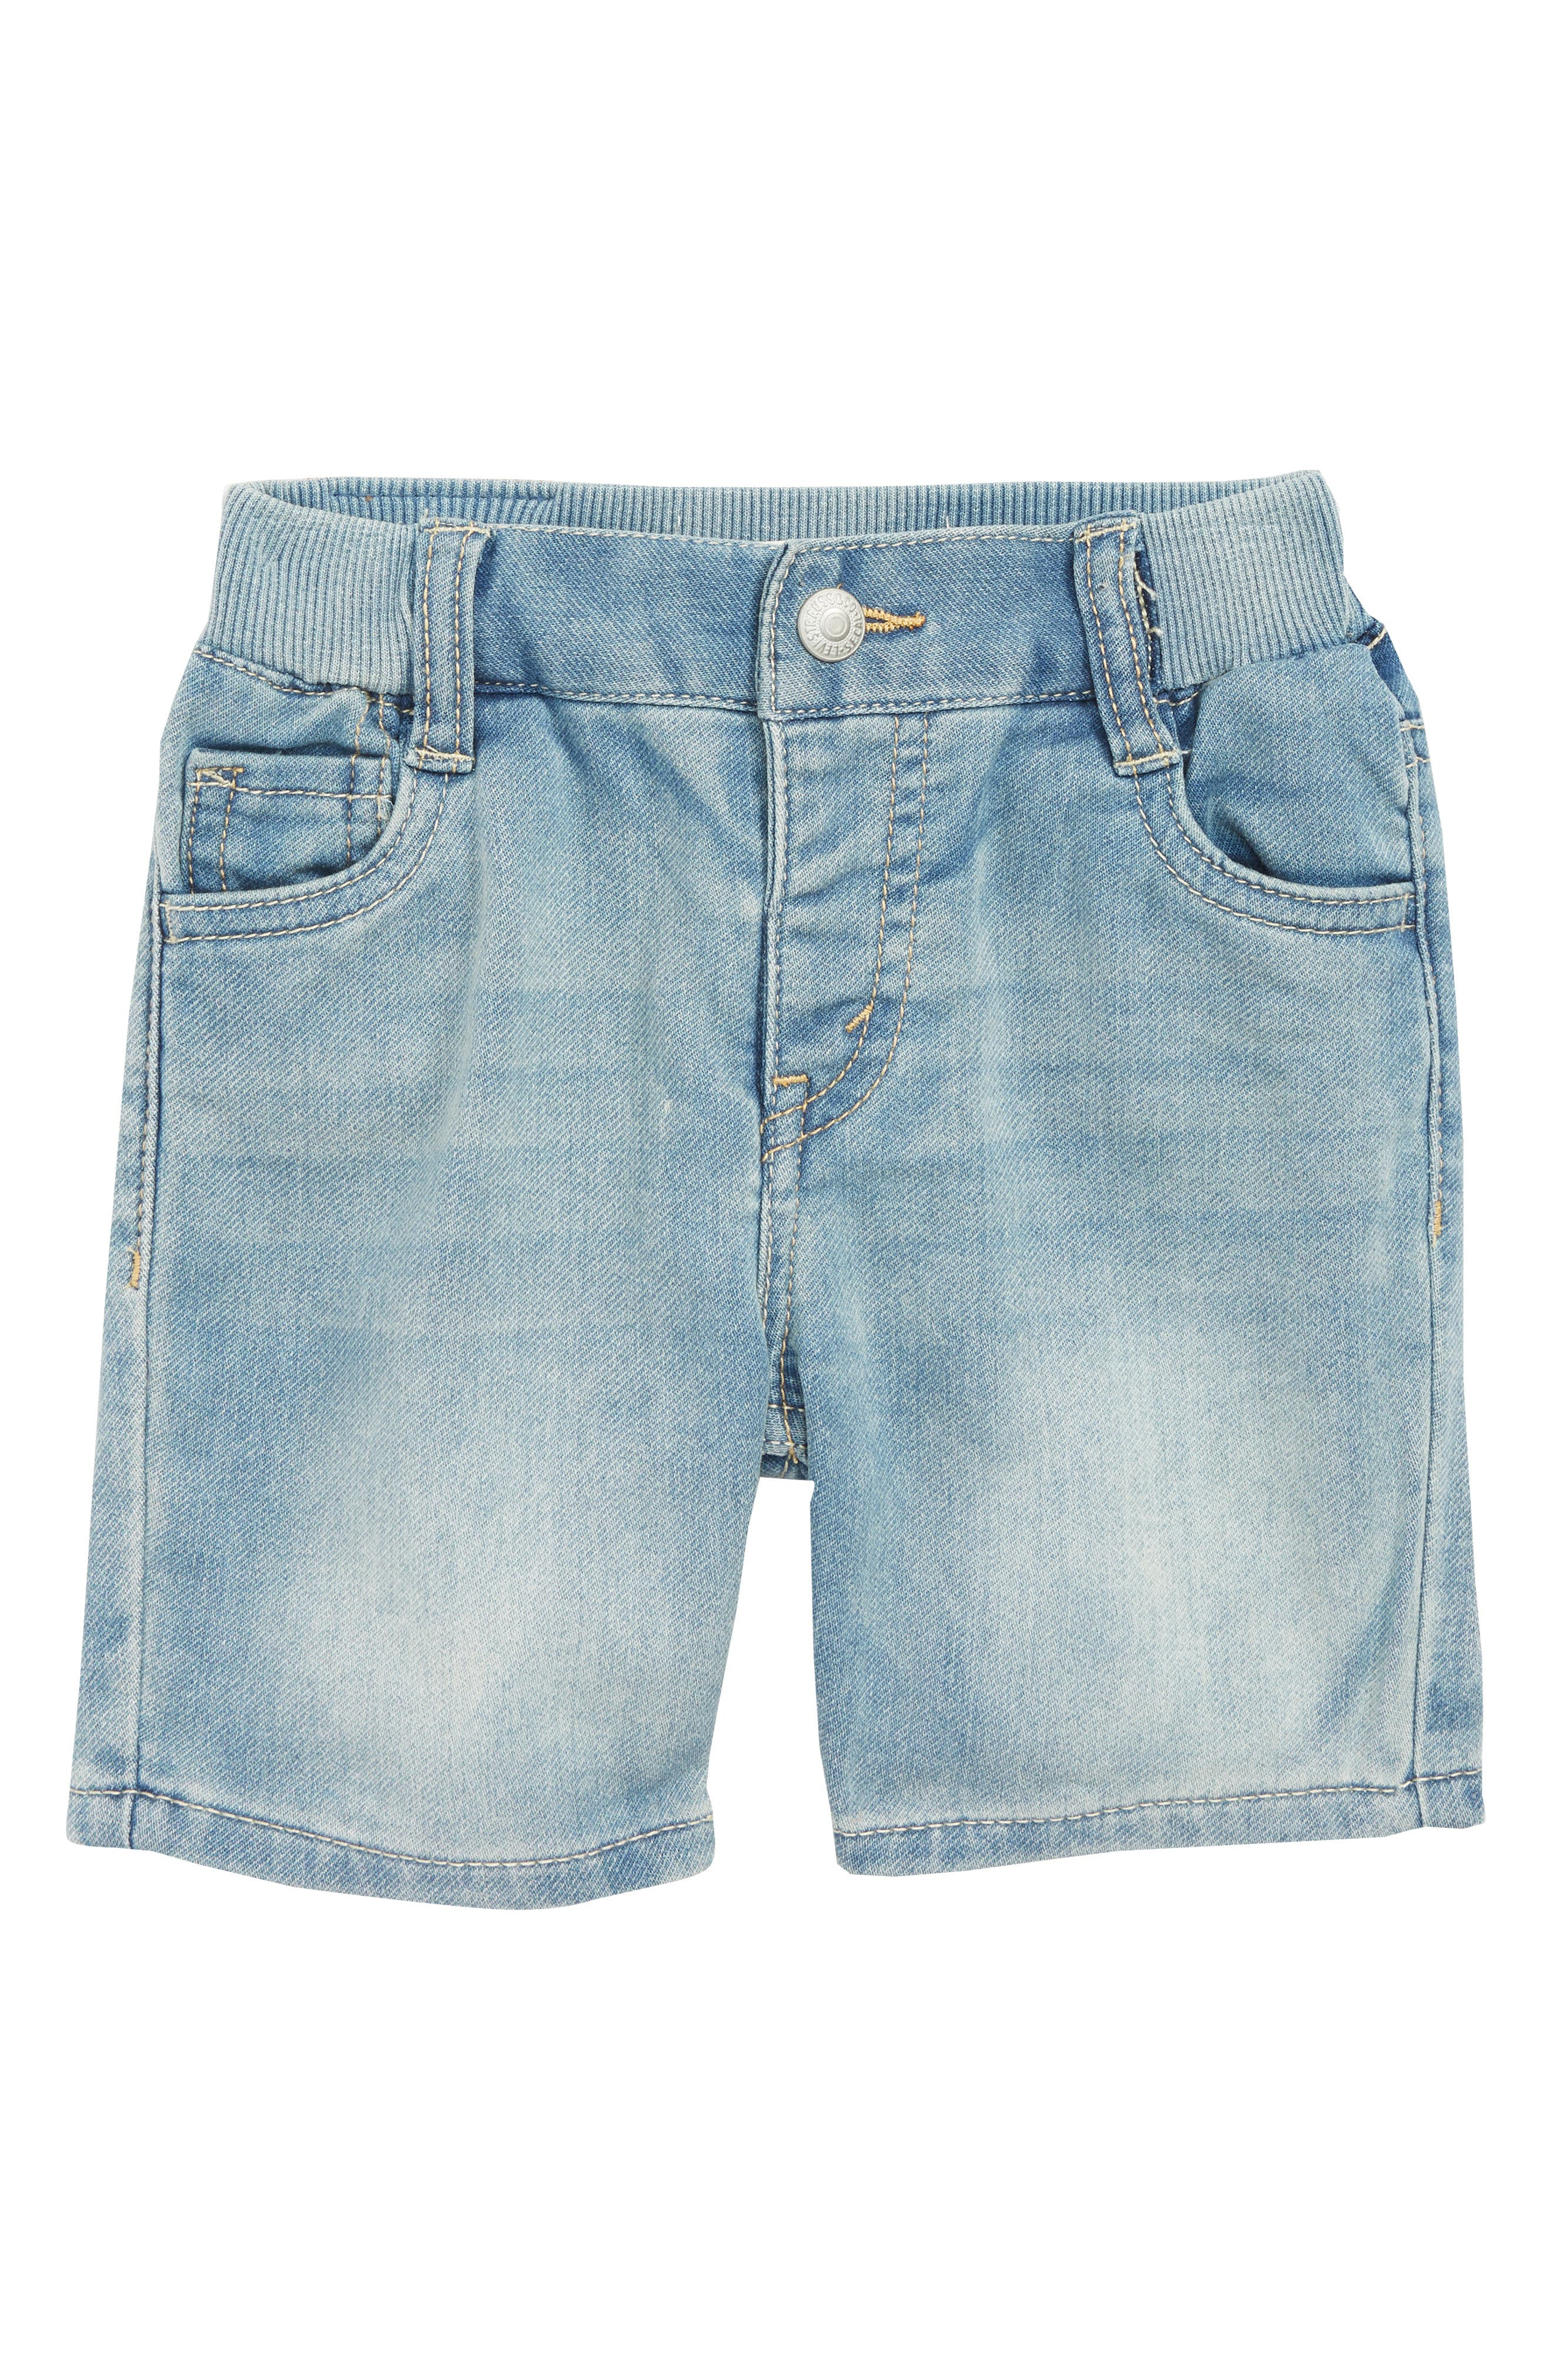 Knit Denim Shorts,                         Main,                         color, 424